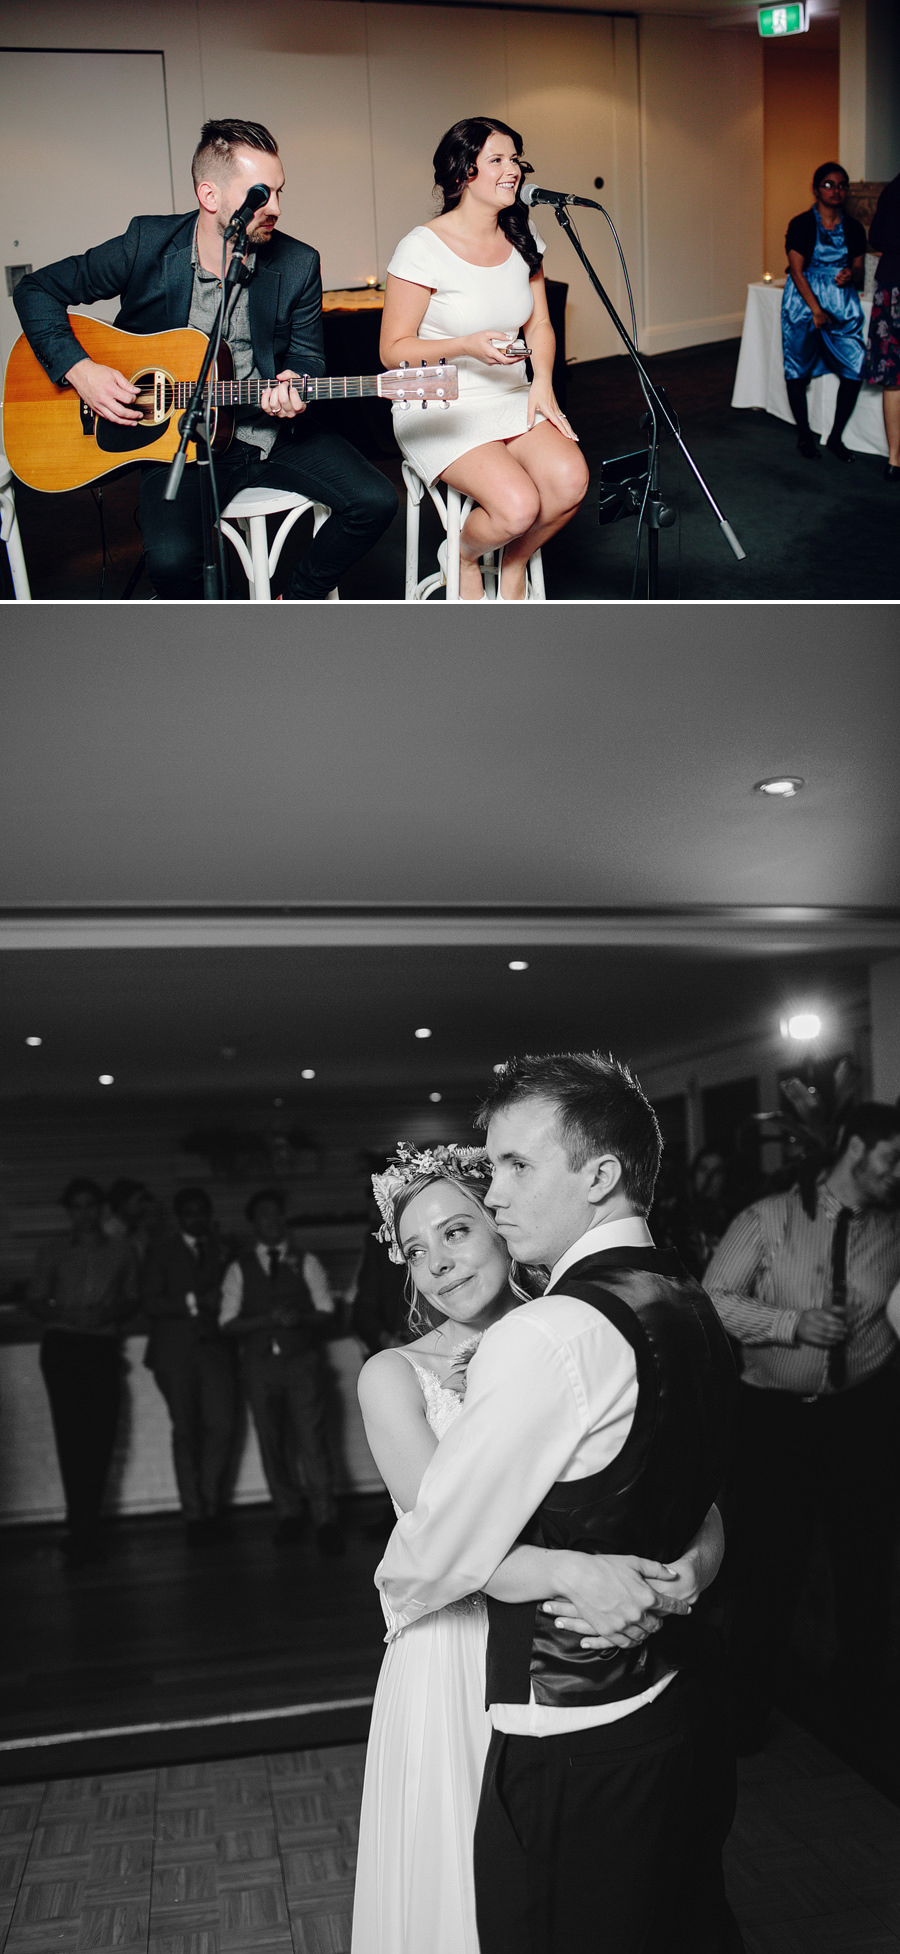 Warringah Wedding Photography: Dancefloor